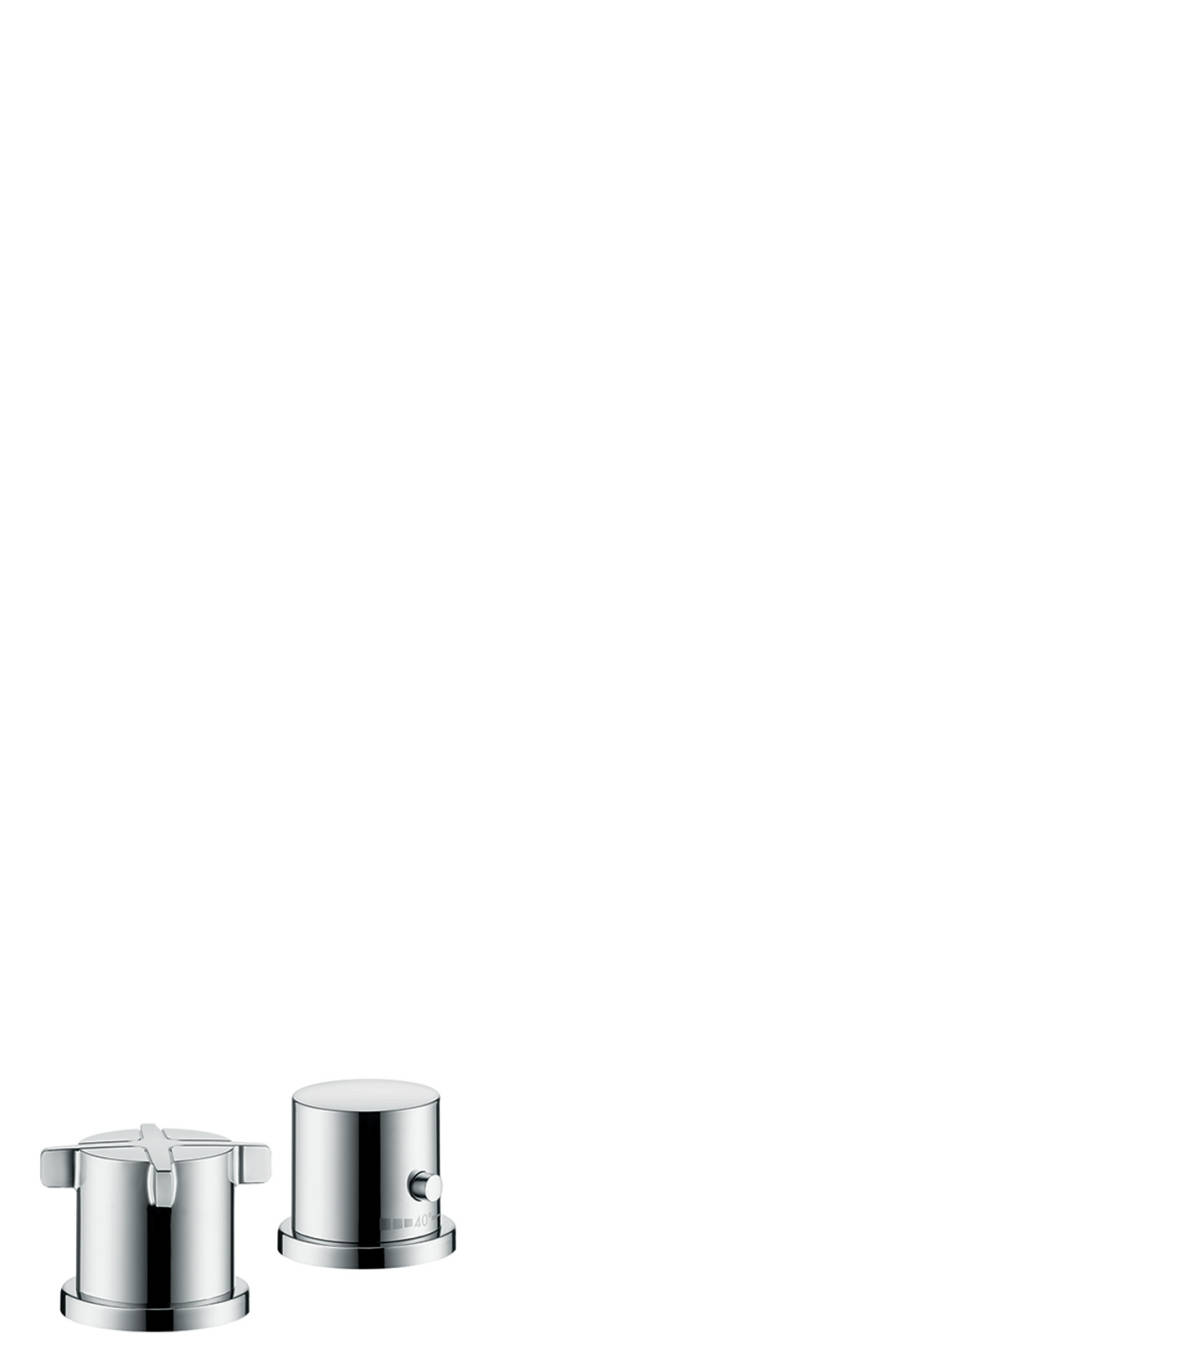 2-hole rim mounted thermostatic bath mixer, Chrome, 36412000